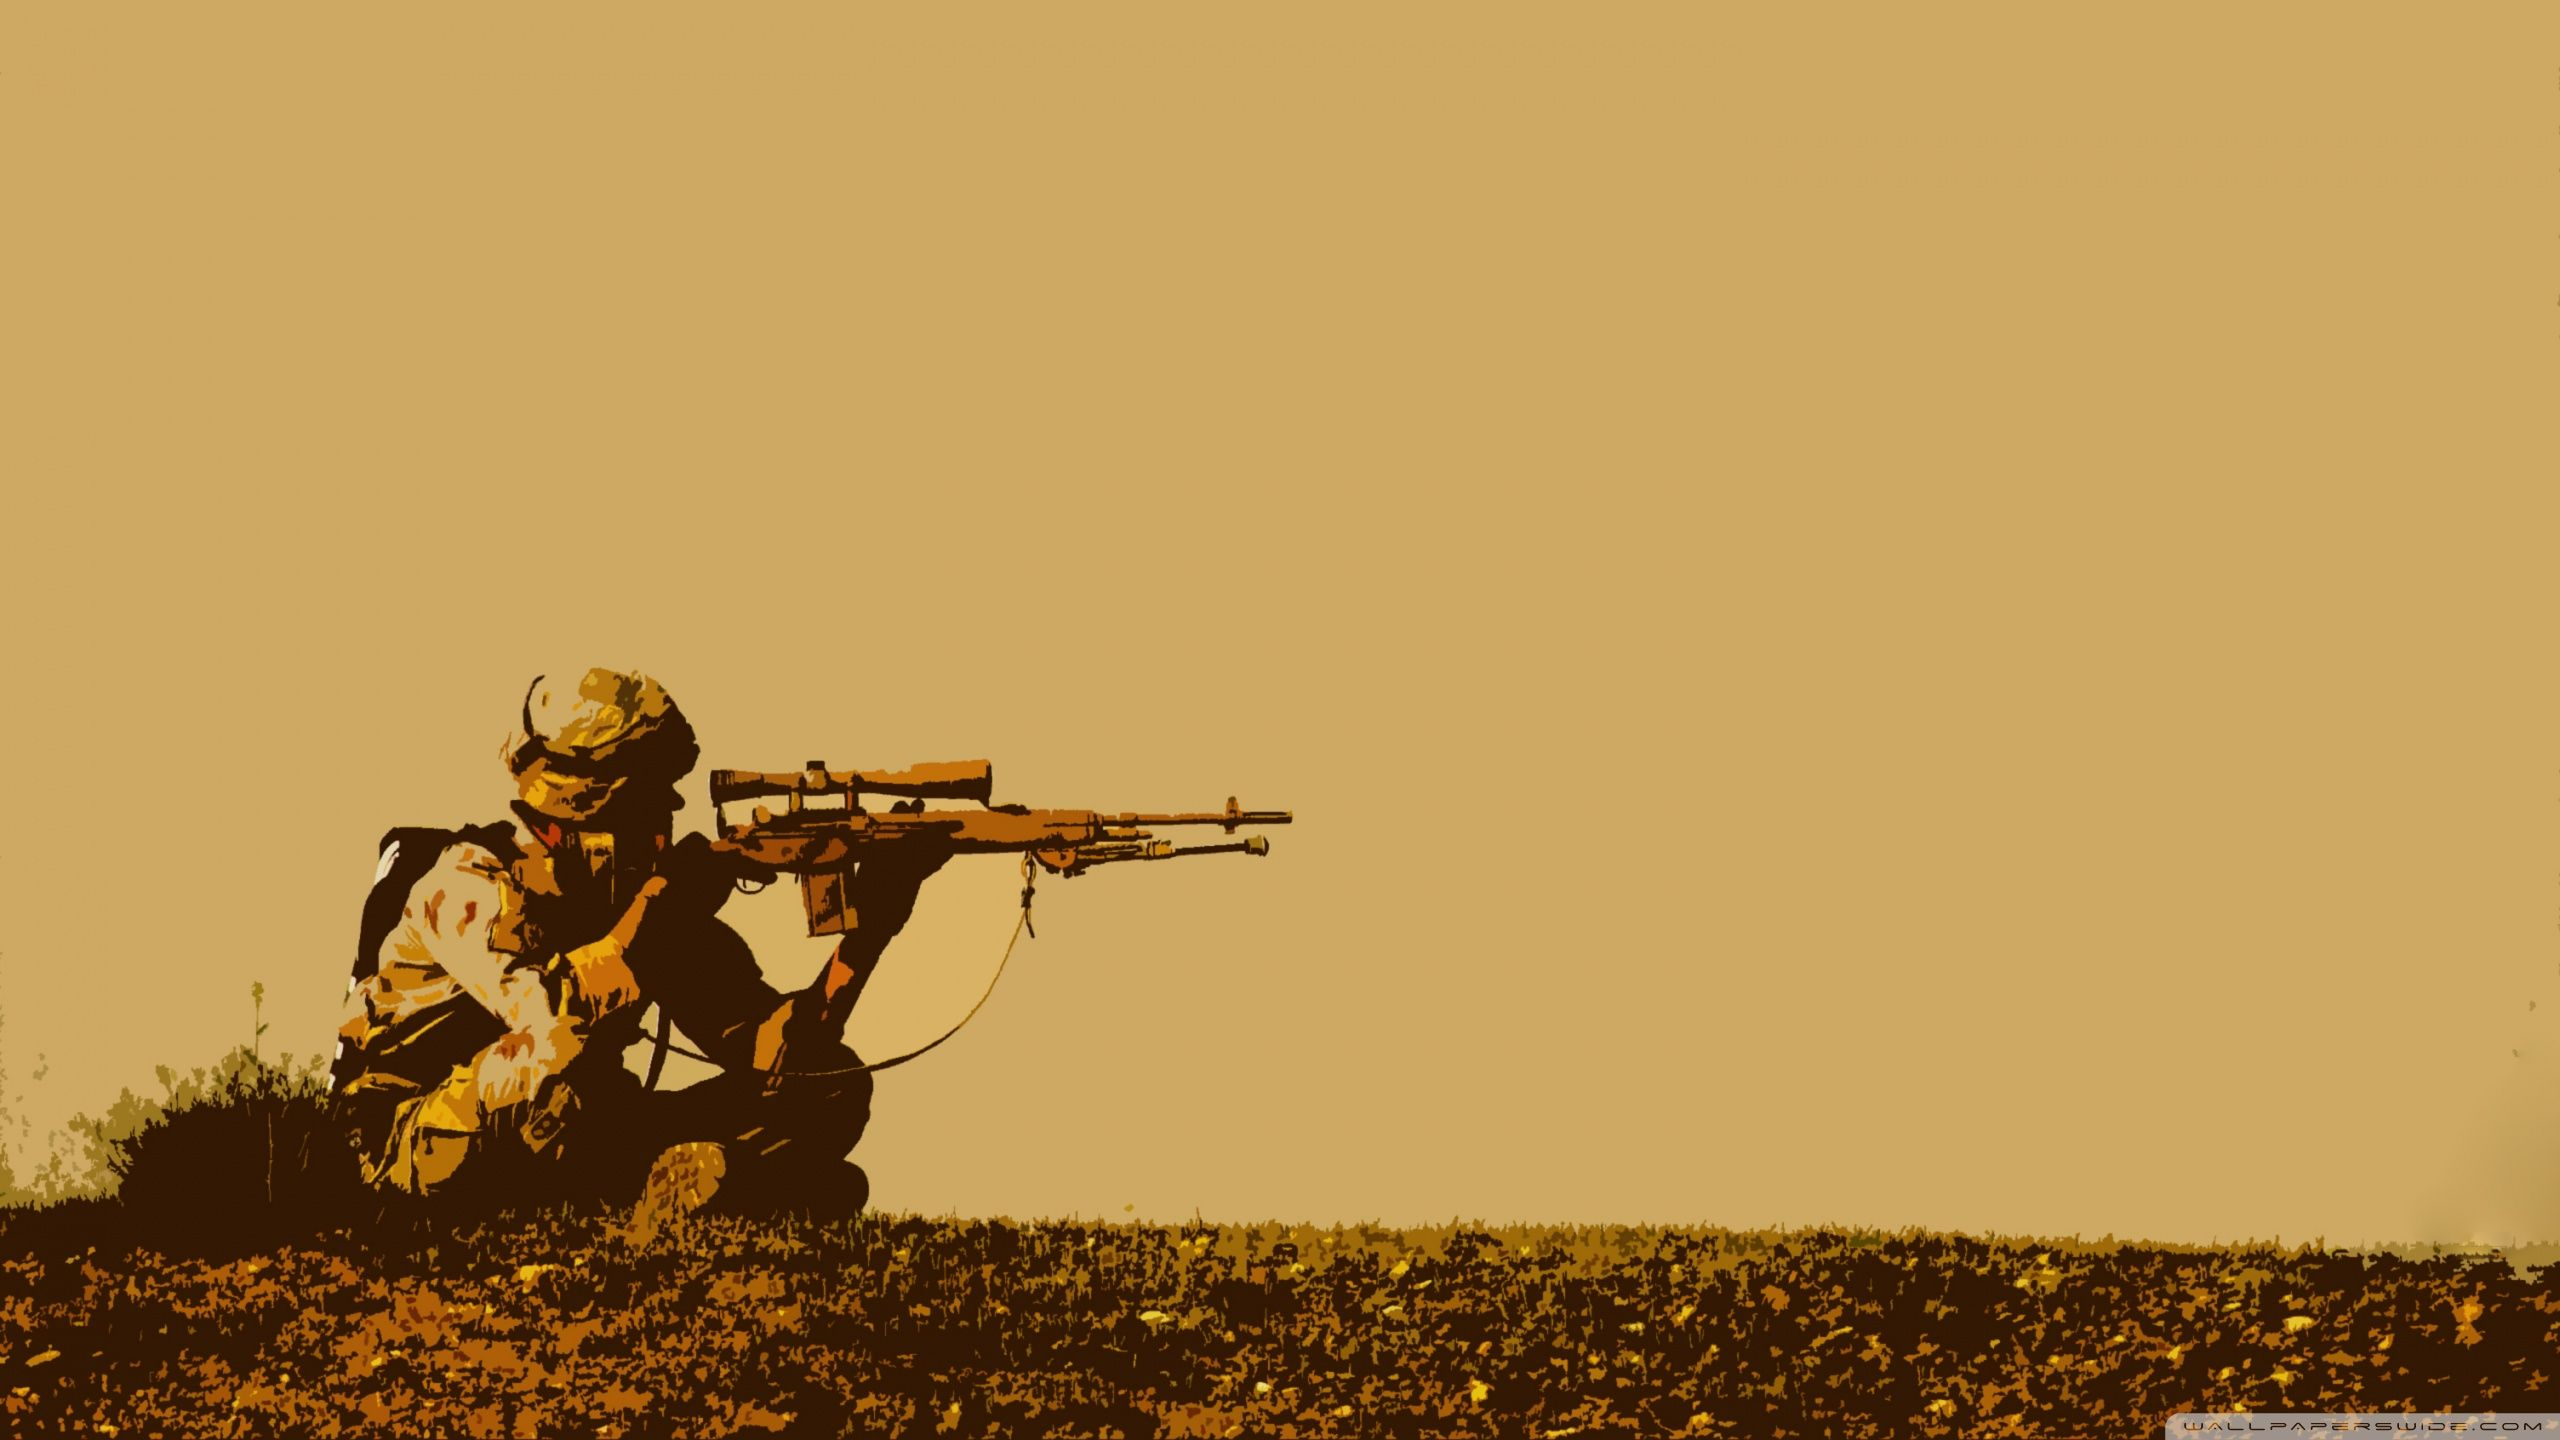 Army Soldier Wallpapers Top Free Army Soldier Backgrounds